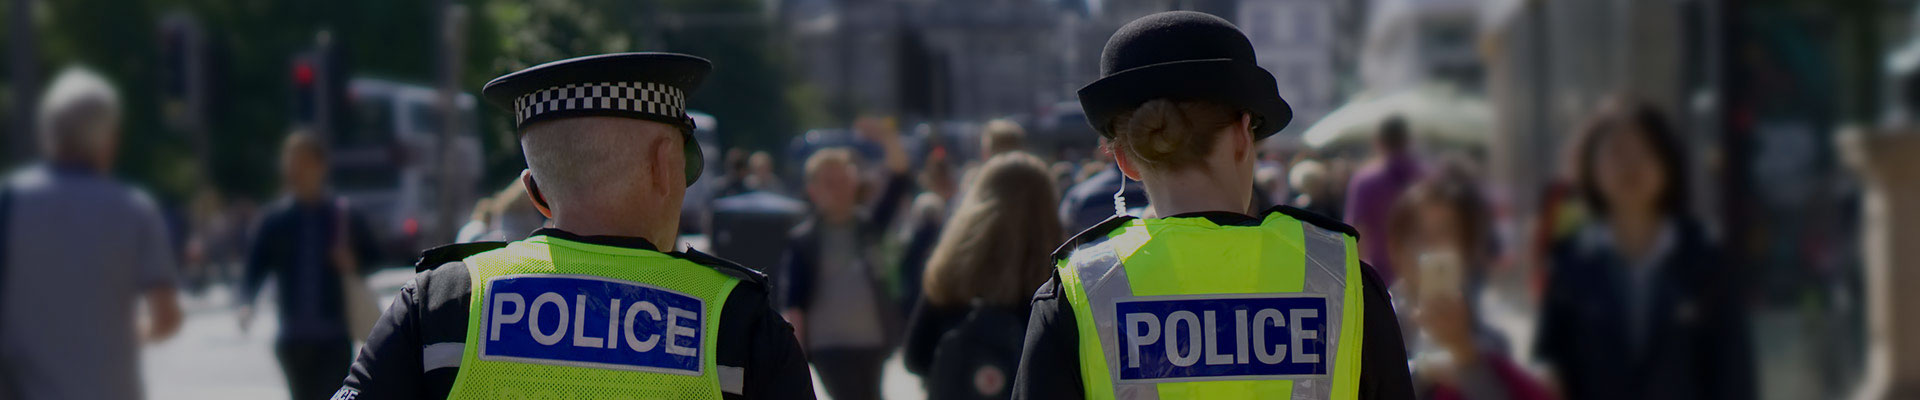 Empowering your police force with Microsoft Surface